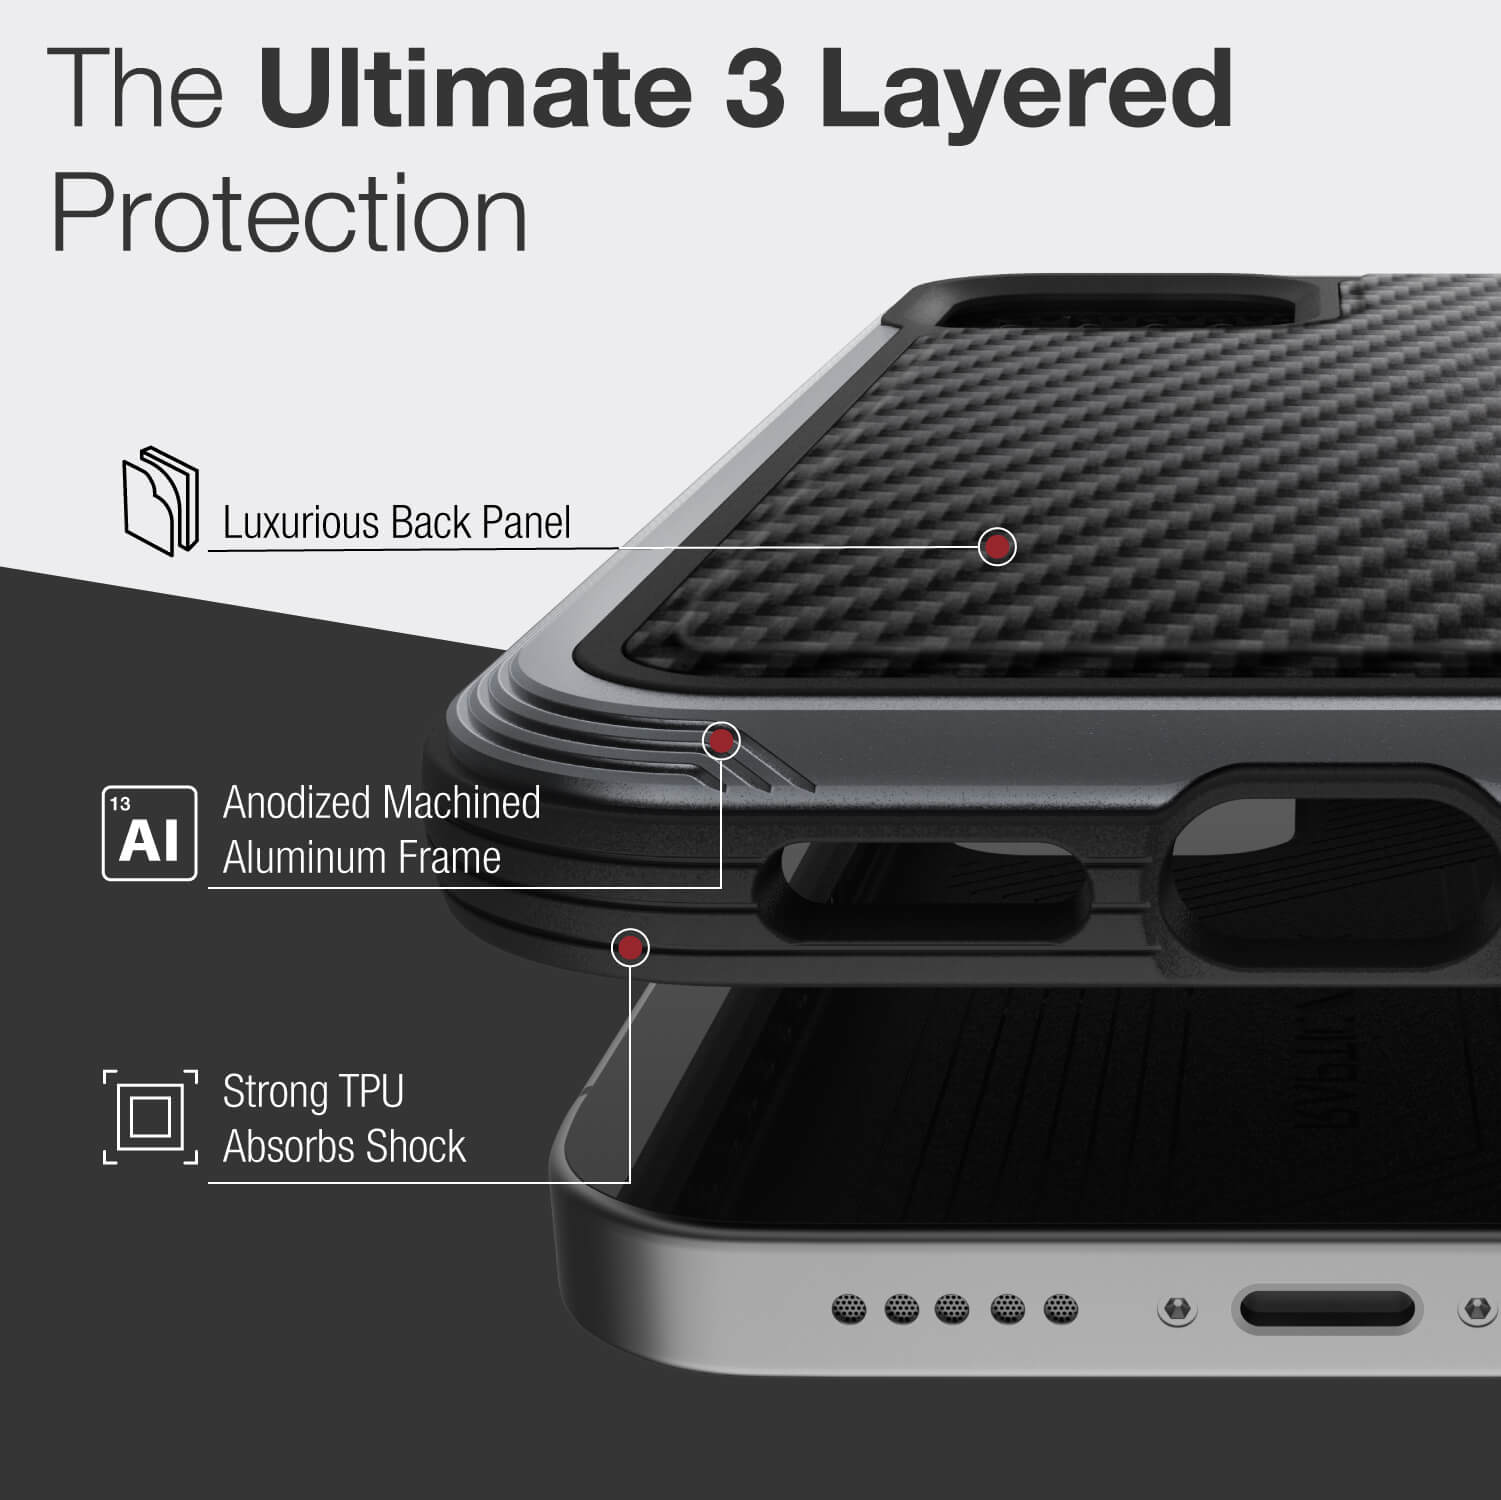 Infographic showing the case has three layers of protection for your iPhone 12